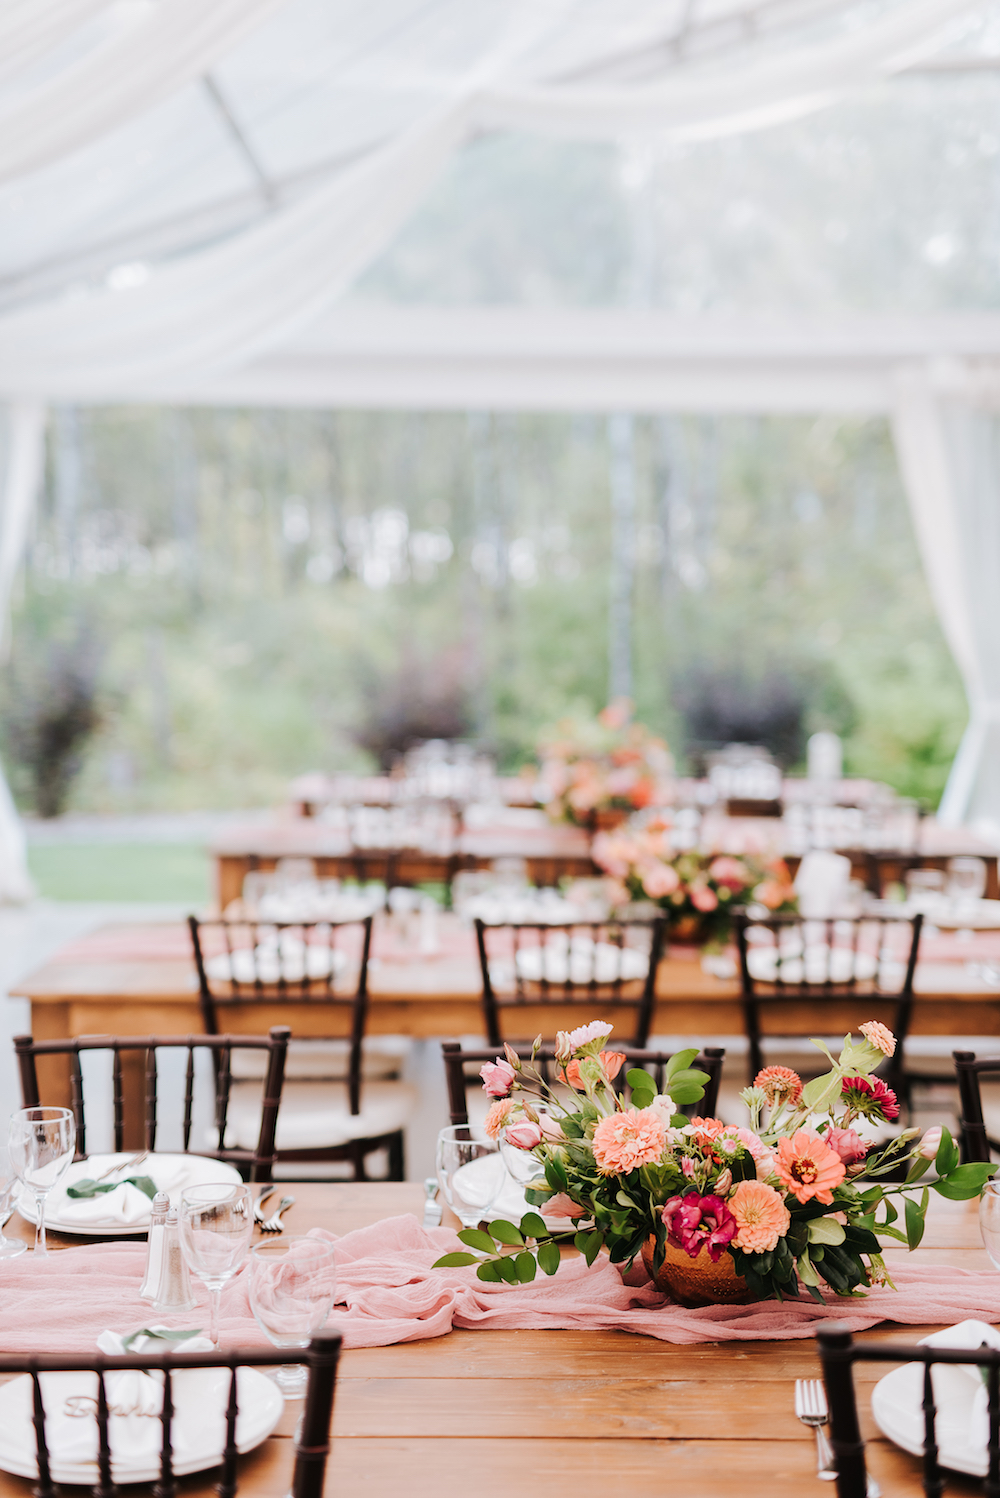 Garden Inspired Wedding Centrepieces - Cielo's Garden Wedding by Stone House Creative